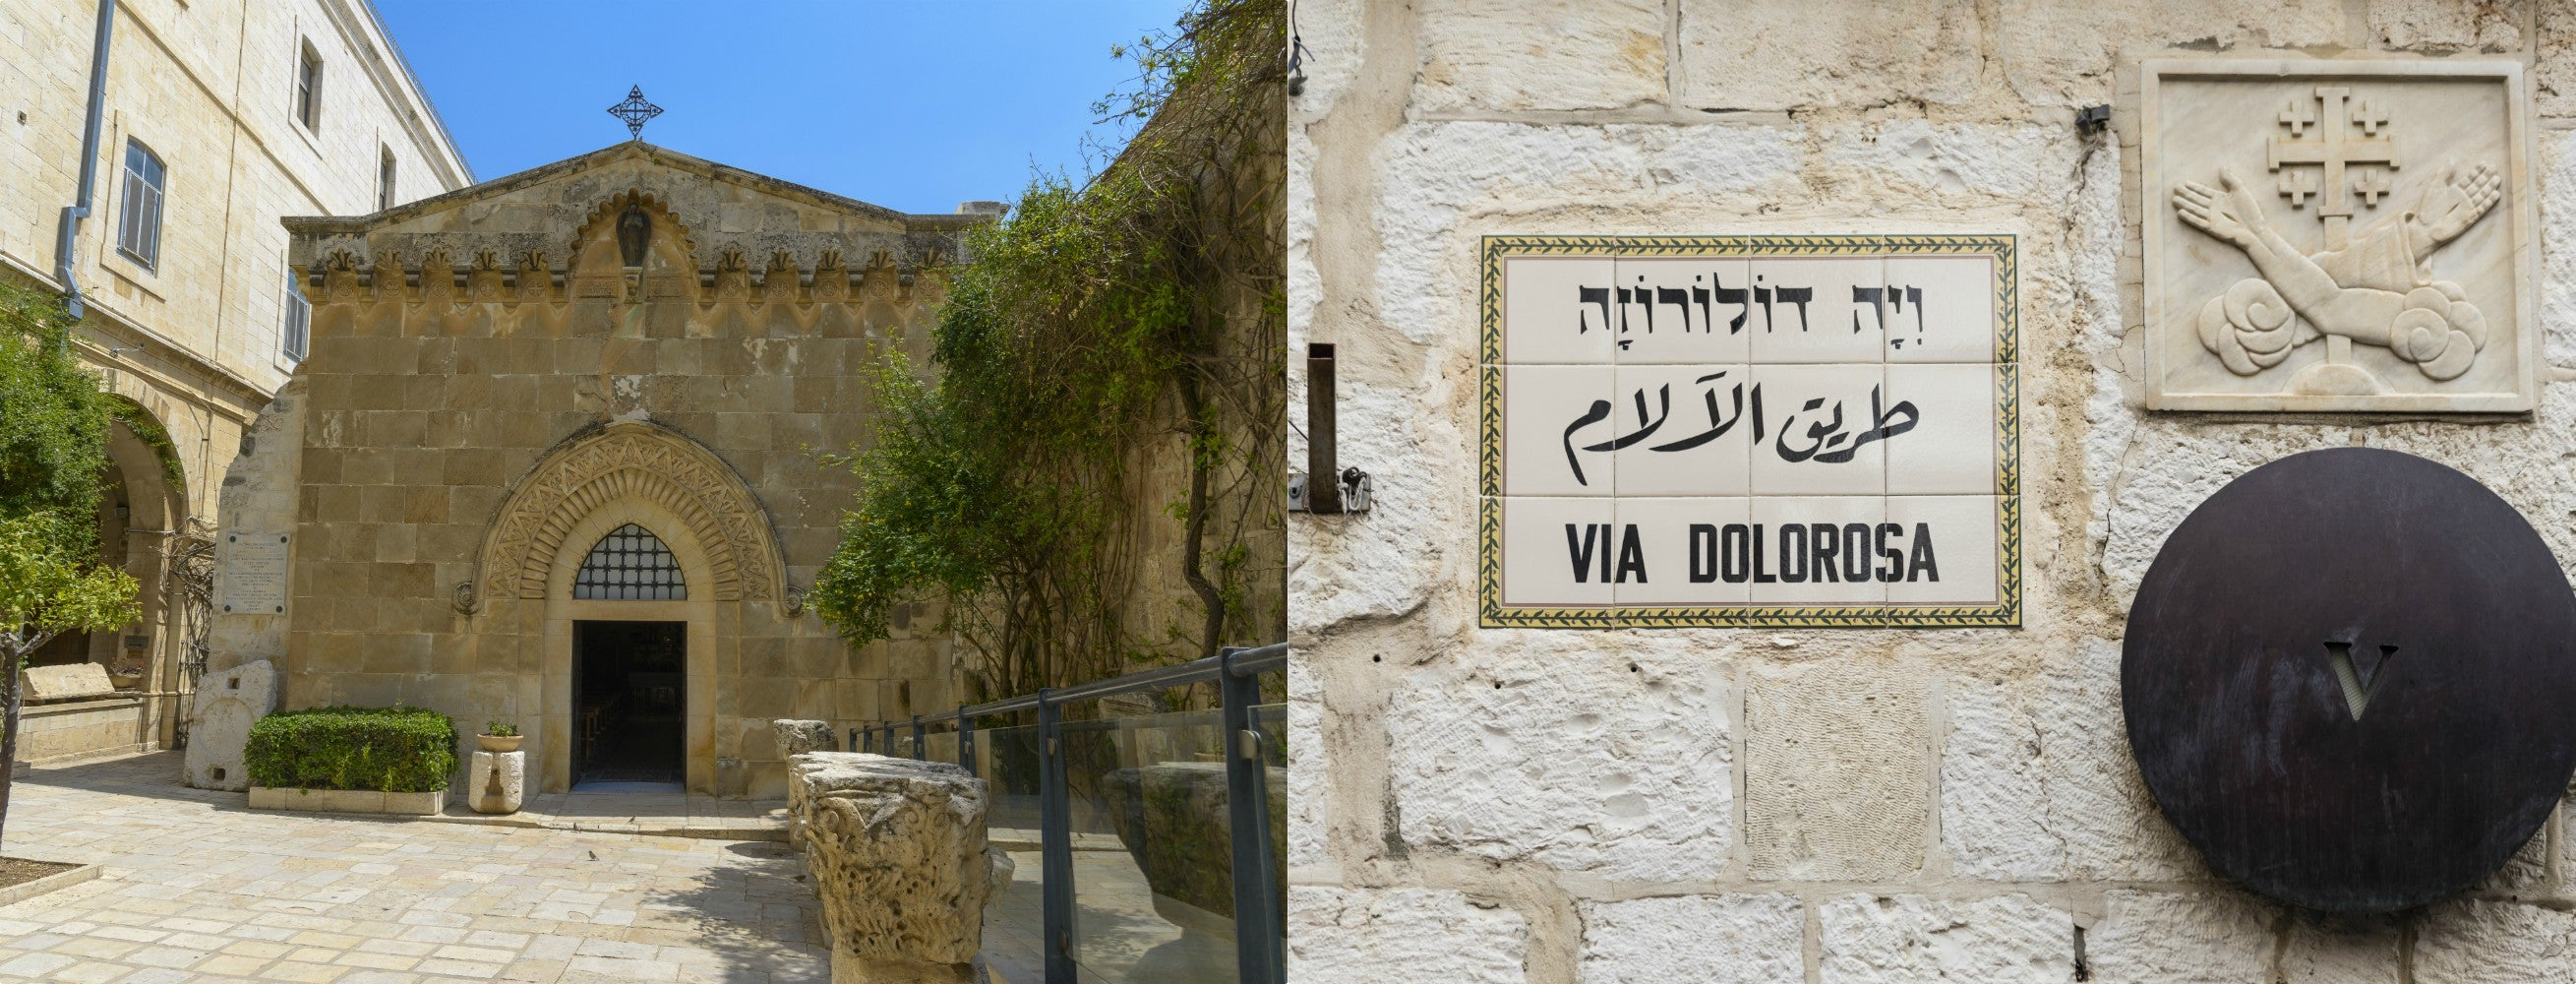 Monastery of the Flagellation / Via Dolorosa